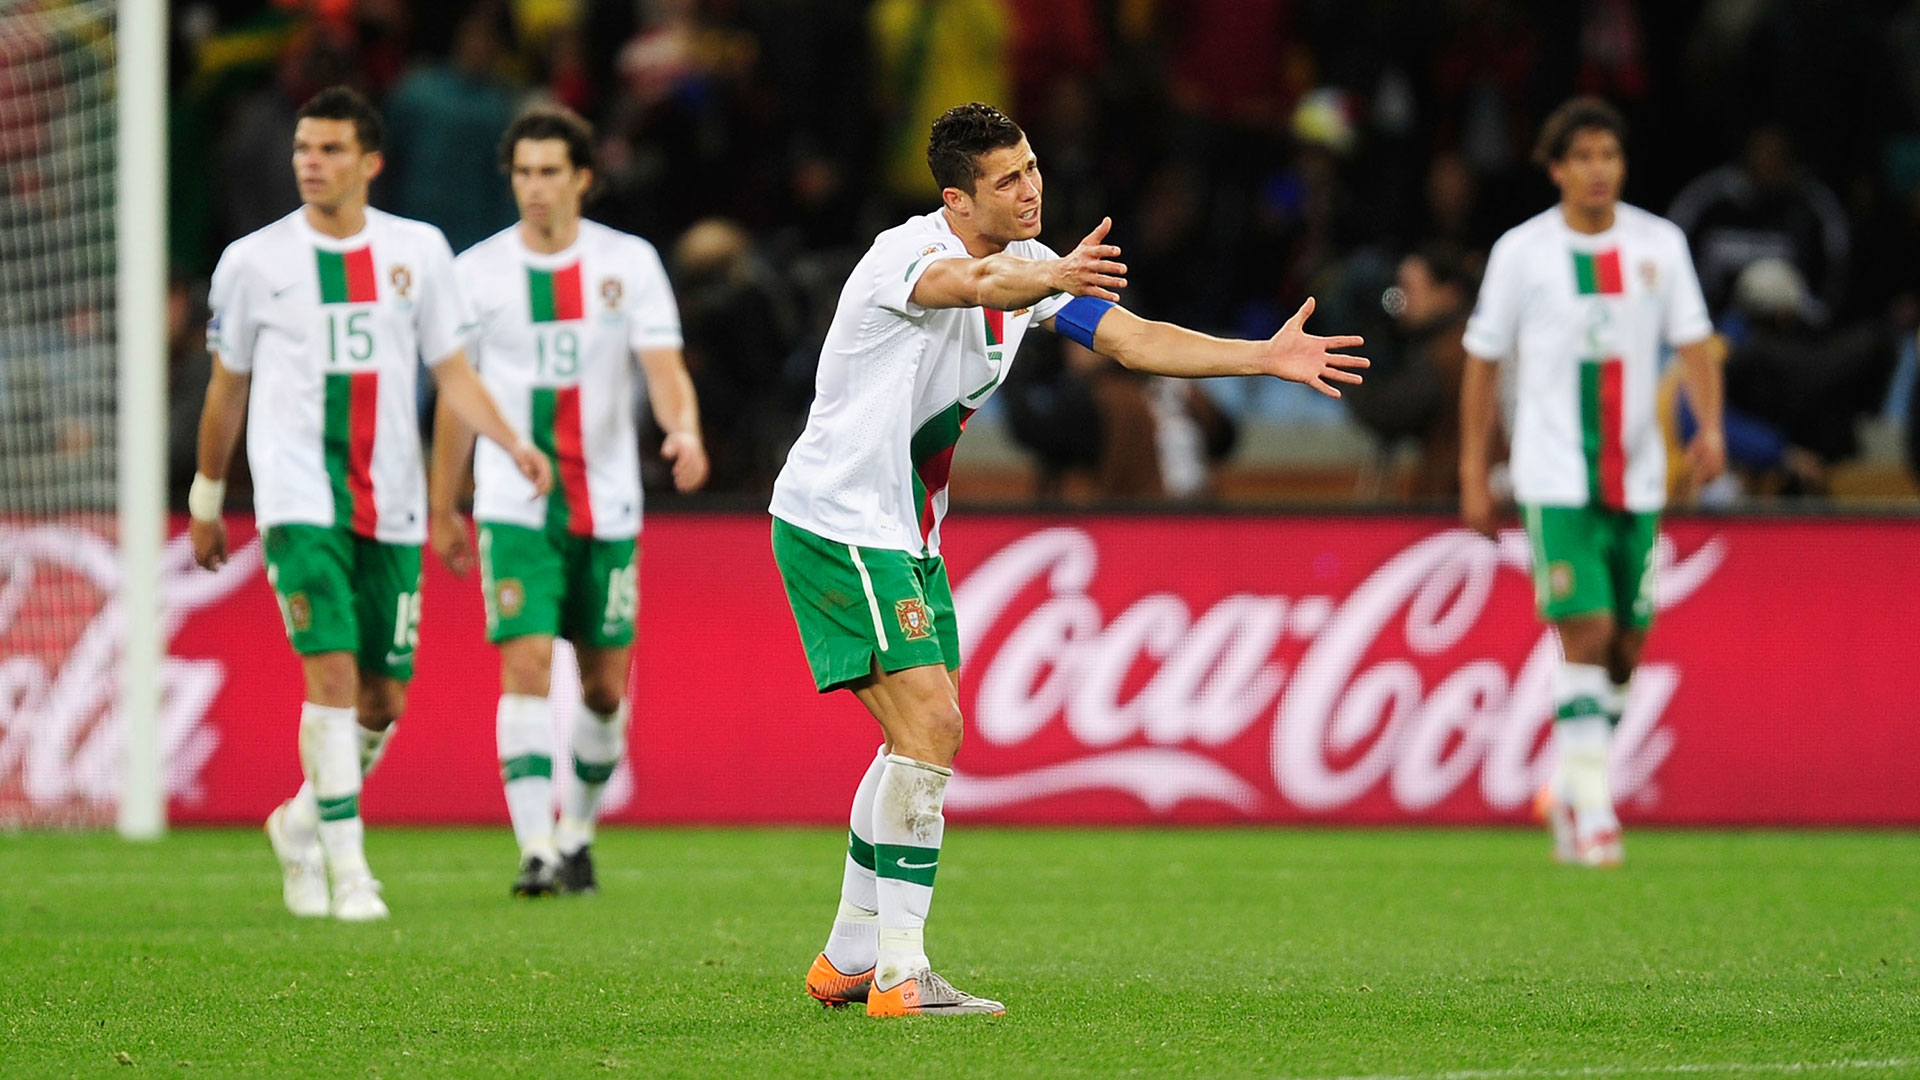 Cristiano Ronaldo Portugal Spain 2010 World Cup